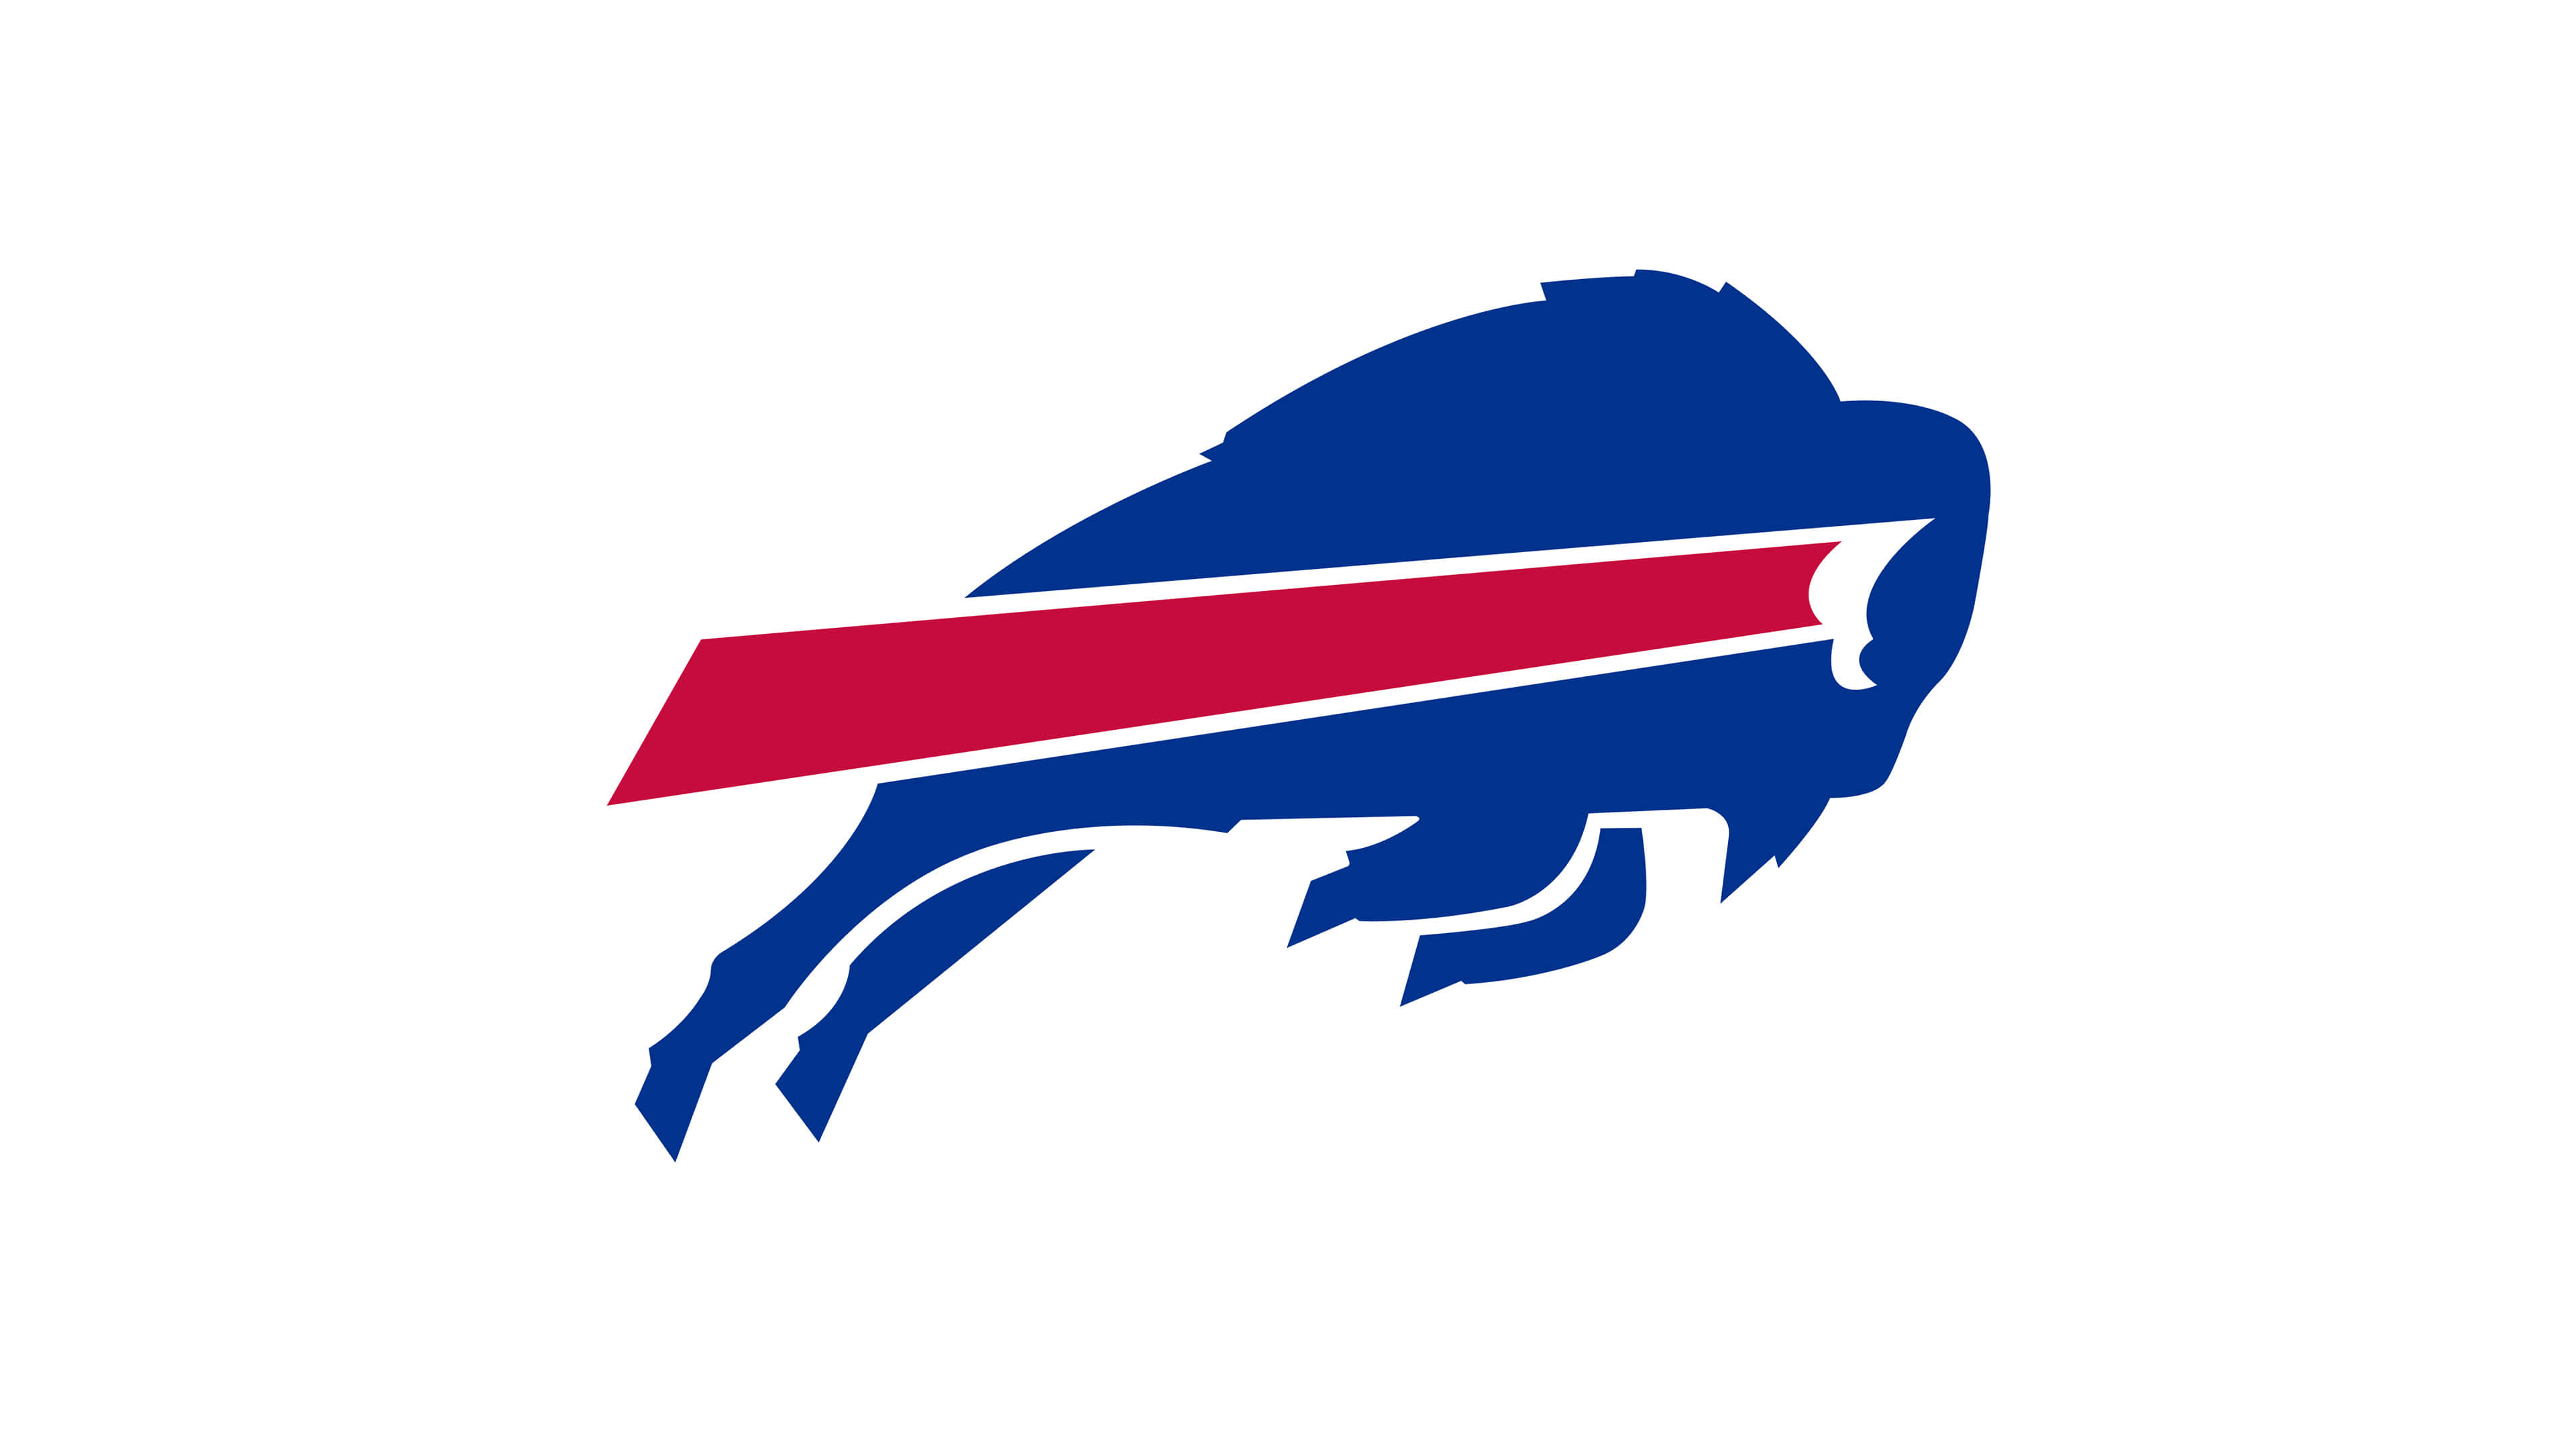 Buffalo Bills Nfl Logo Uhd 4k Wallpaper Pixelz Cc